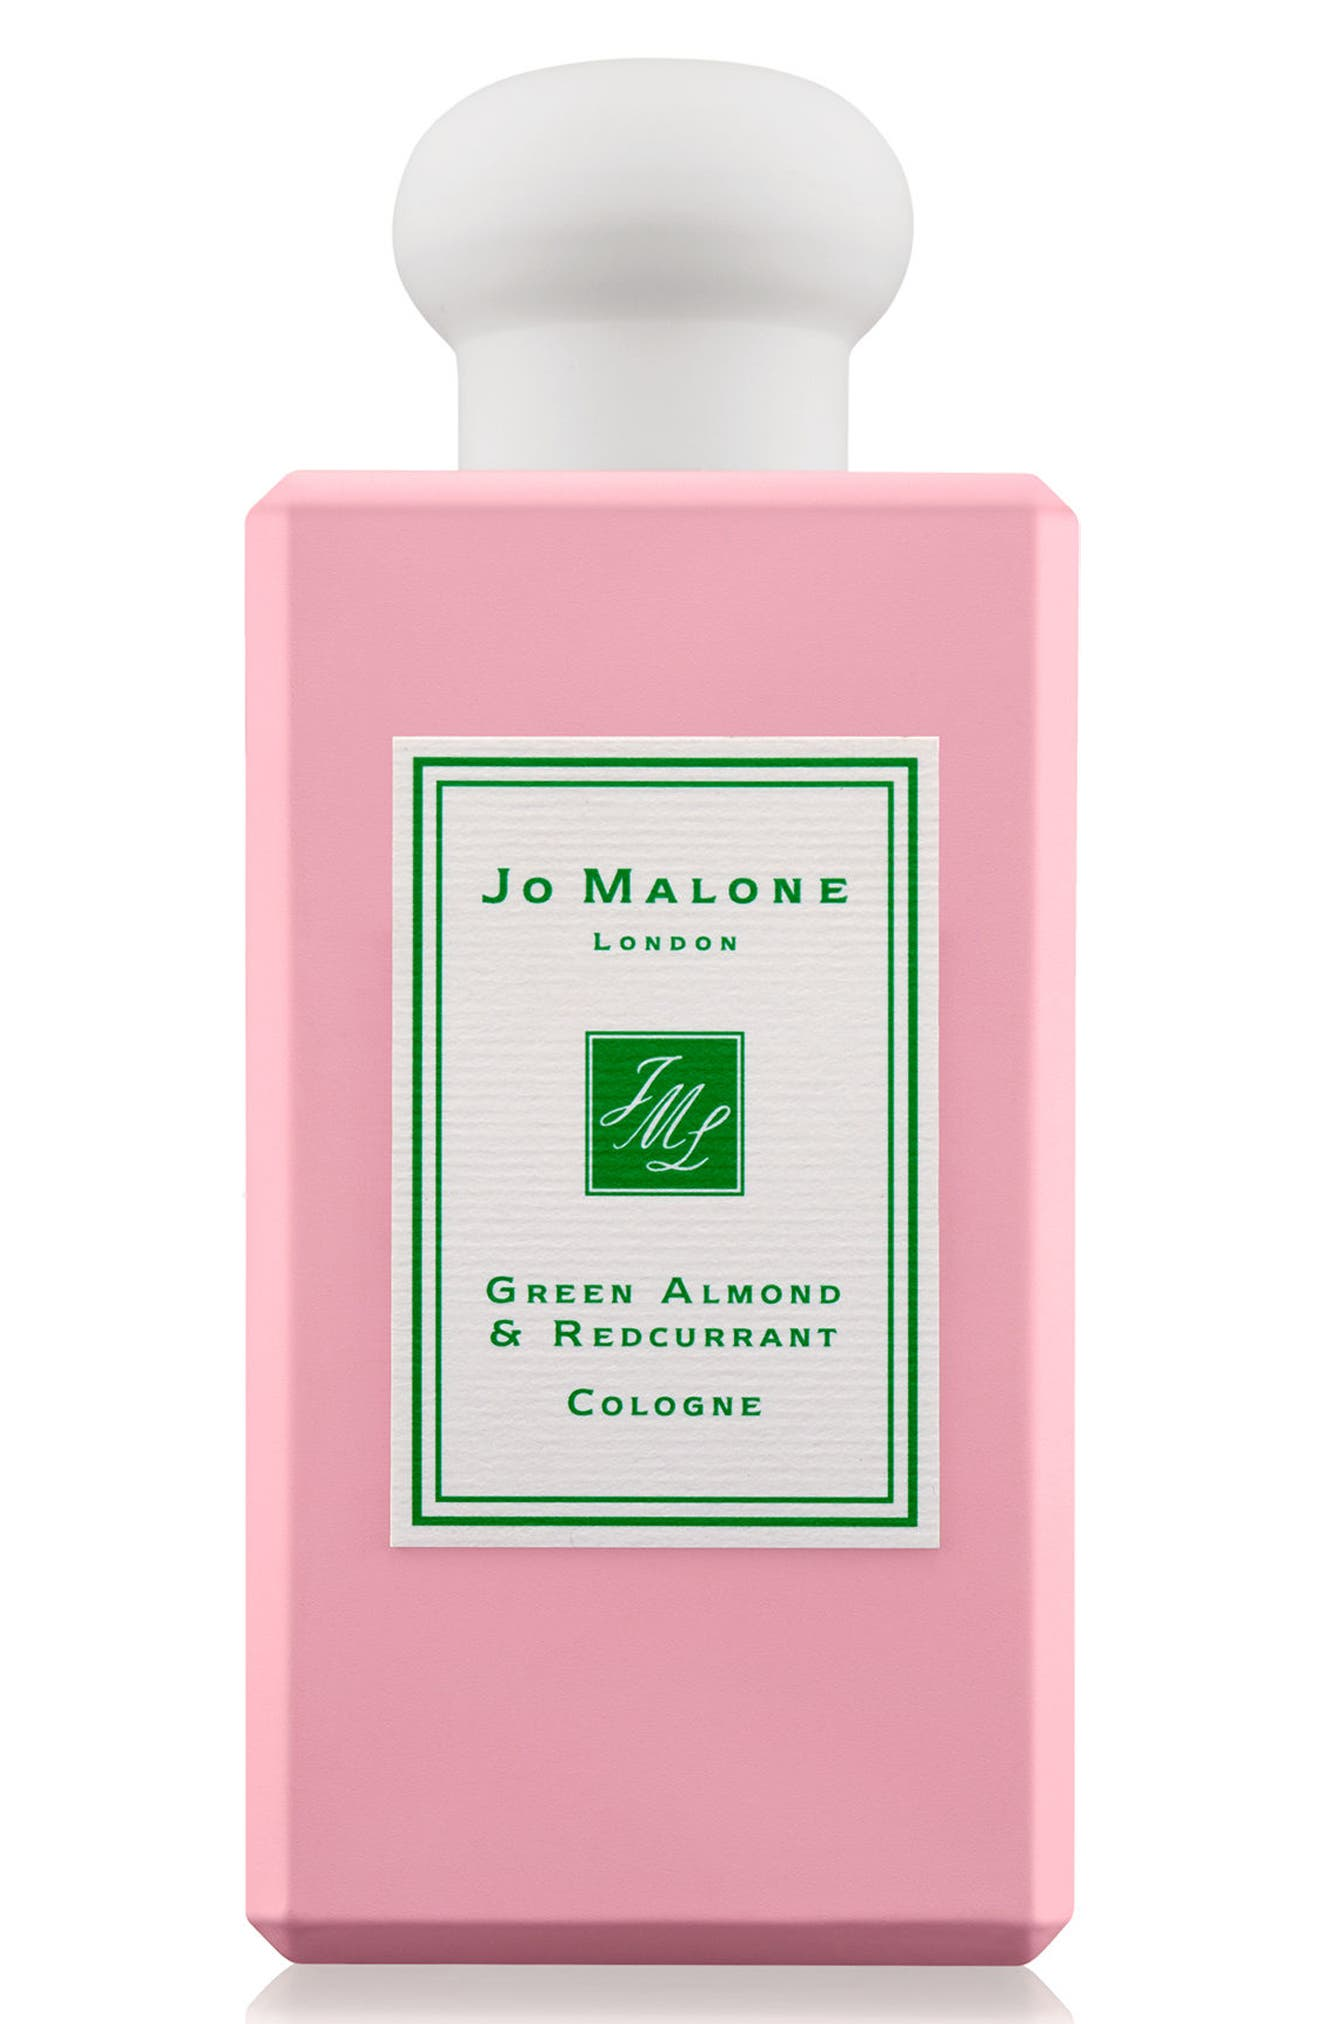 Jo Malone London™ Green Almond & Redcurrant Cologne